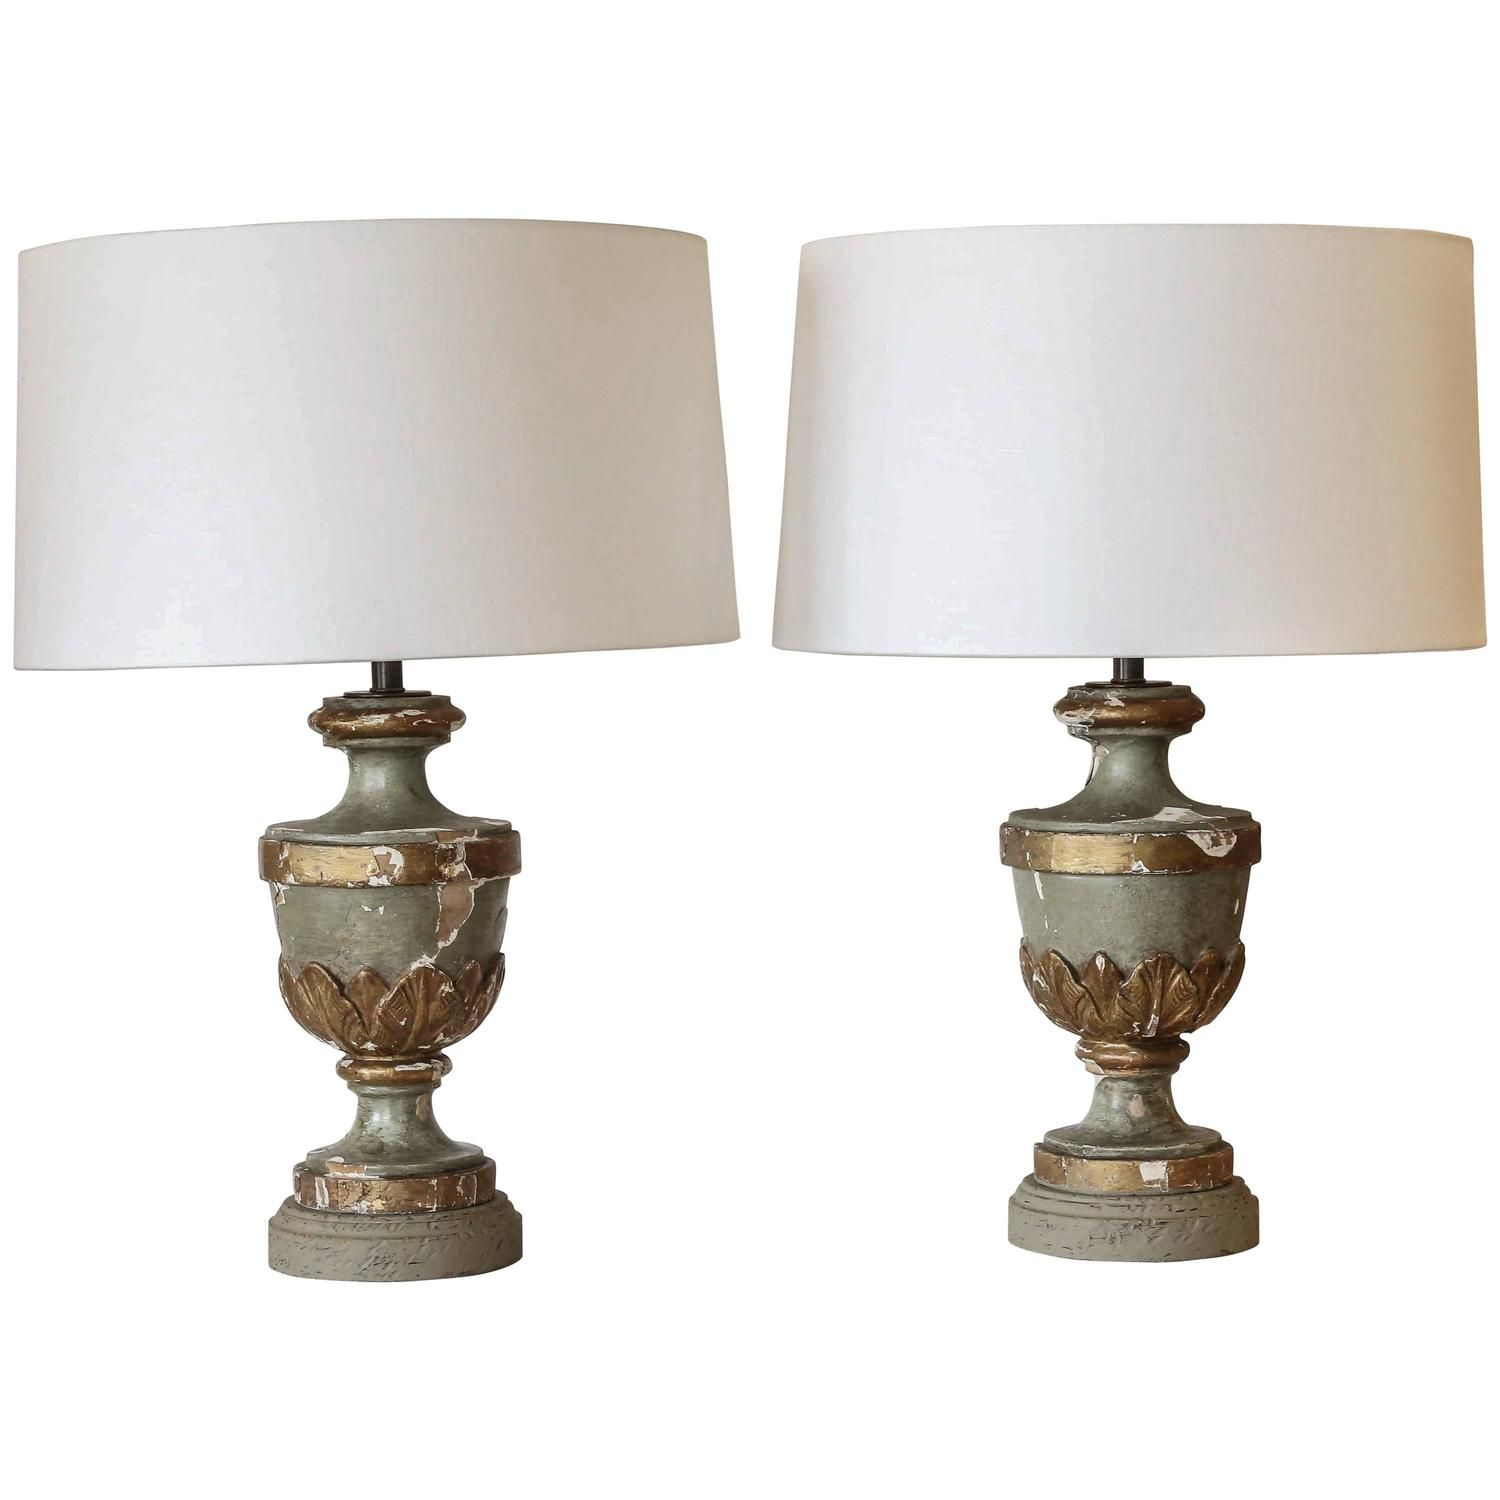 19th century painted and carved finials as custom table lamps 19th century painted and carved finials as custom table lamps aloadofball Choice Image